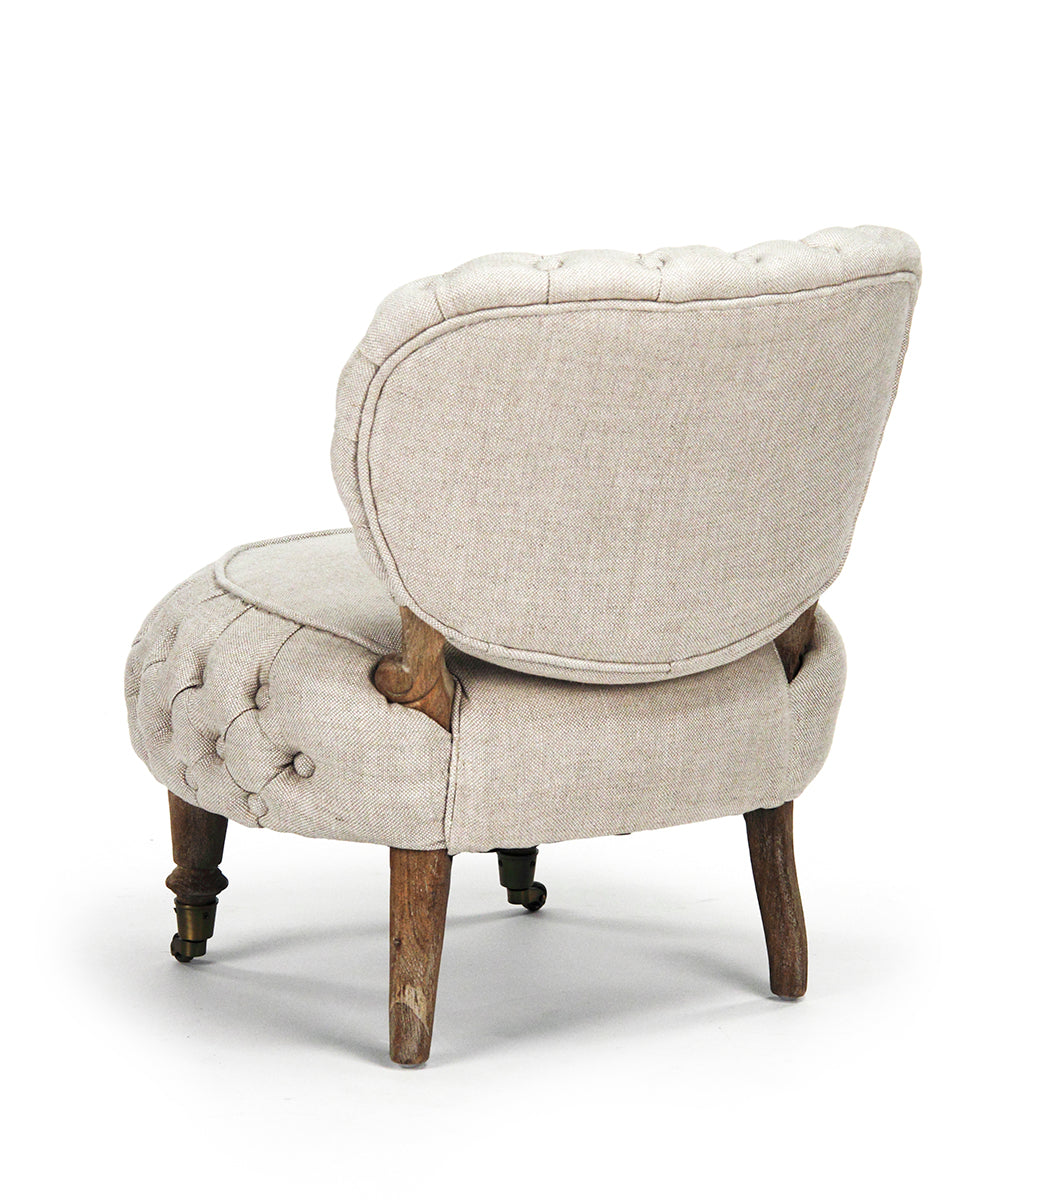 Excellent Zentique Sylvie Tufted Chair   TH048 E272 A015-A   Slipper Chairs  CR46